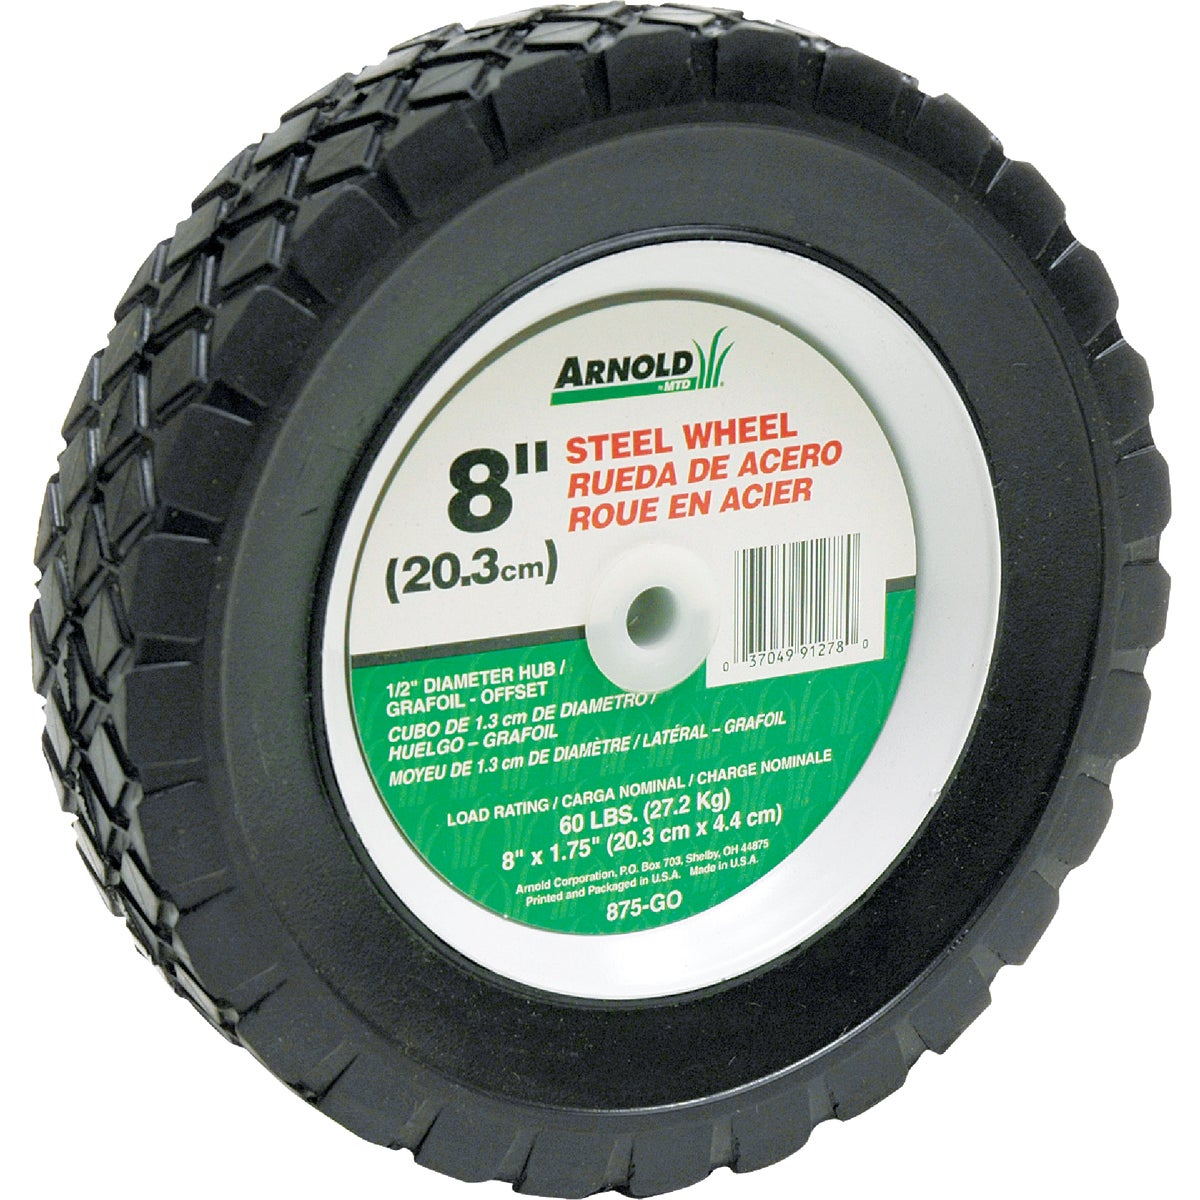 8X1.75 STEEL WHEEL - 875-GO by Arnold Corp